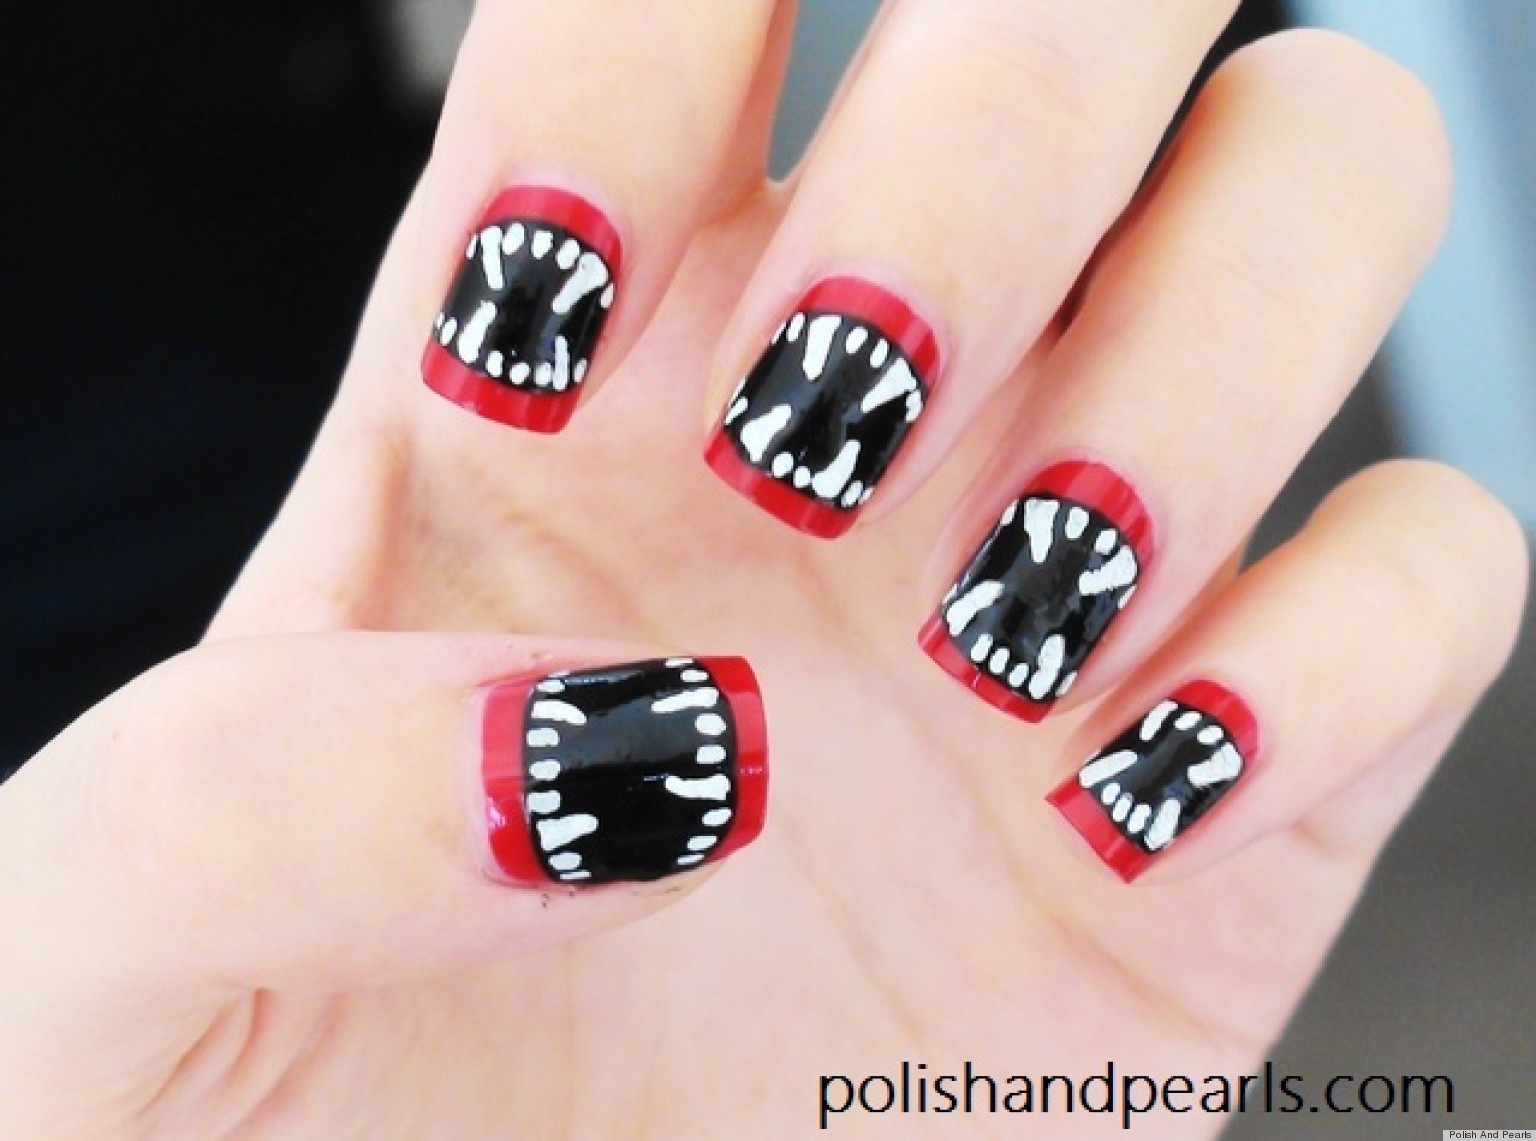 15 halloween nail art designs you can do at home o diy nail art halloween vampire fangs facebook prinsesfo Image collections